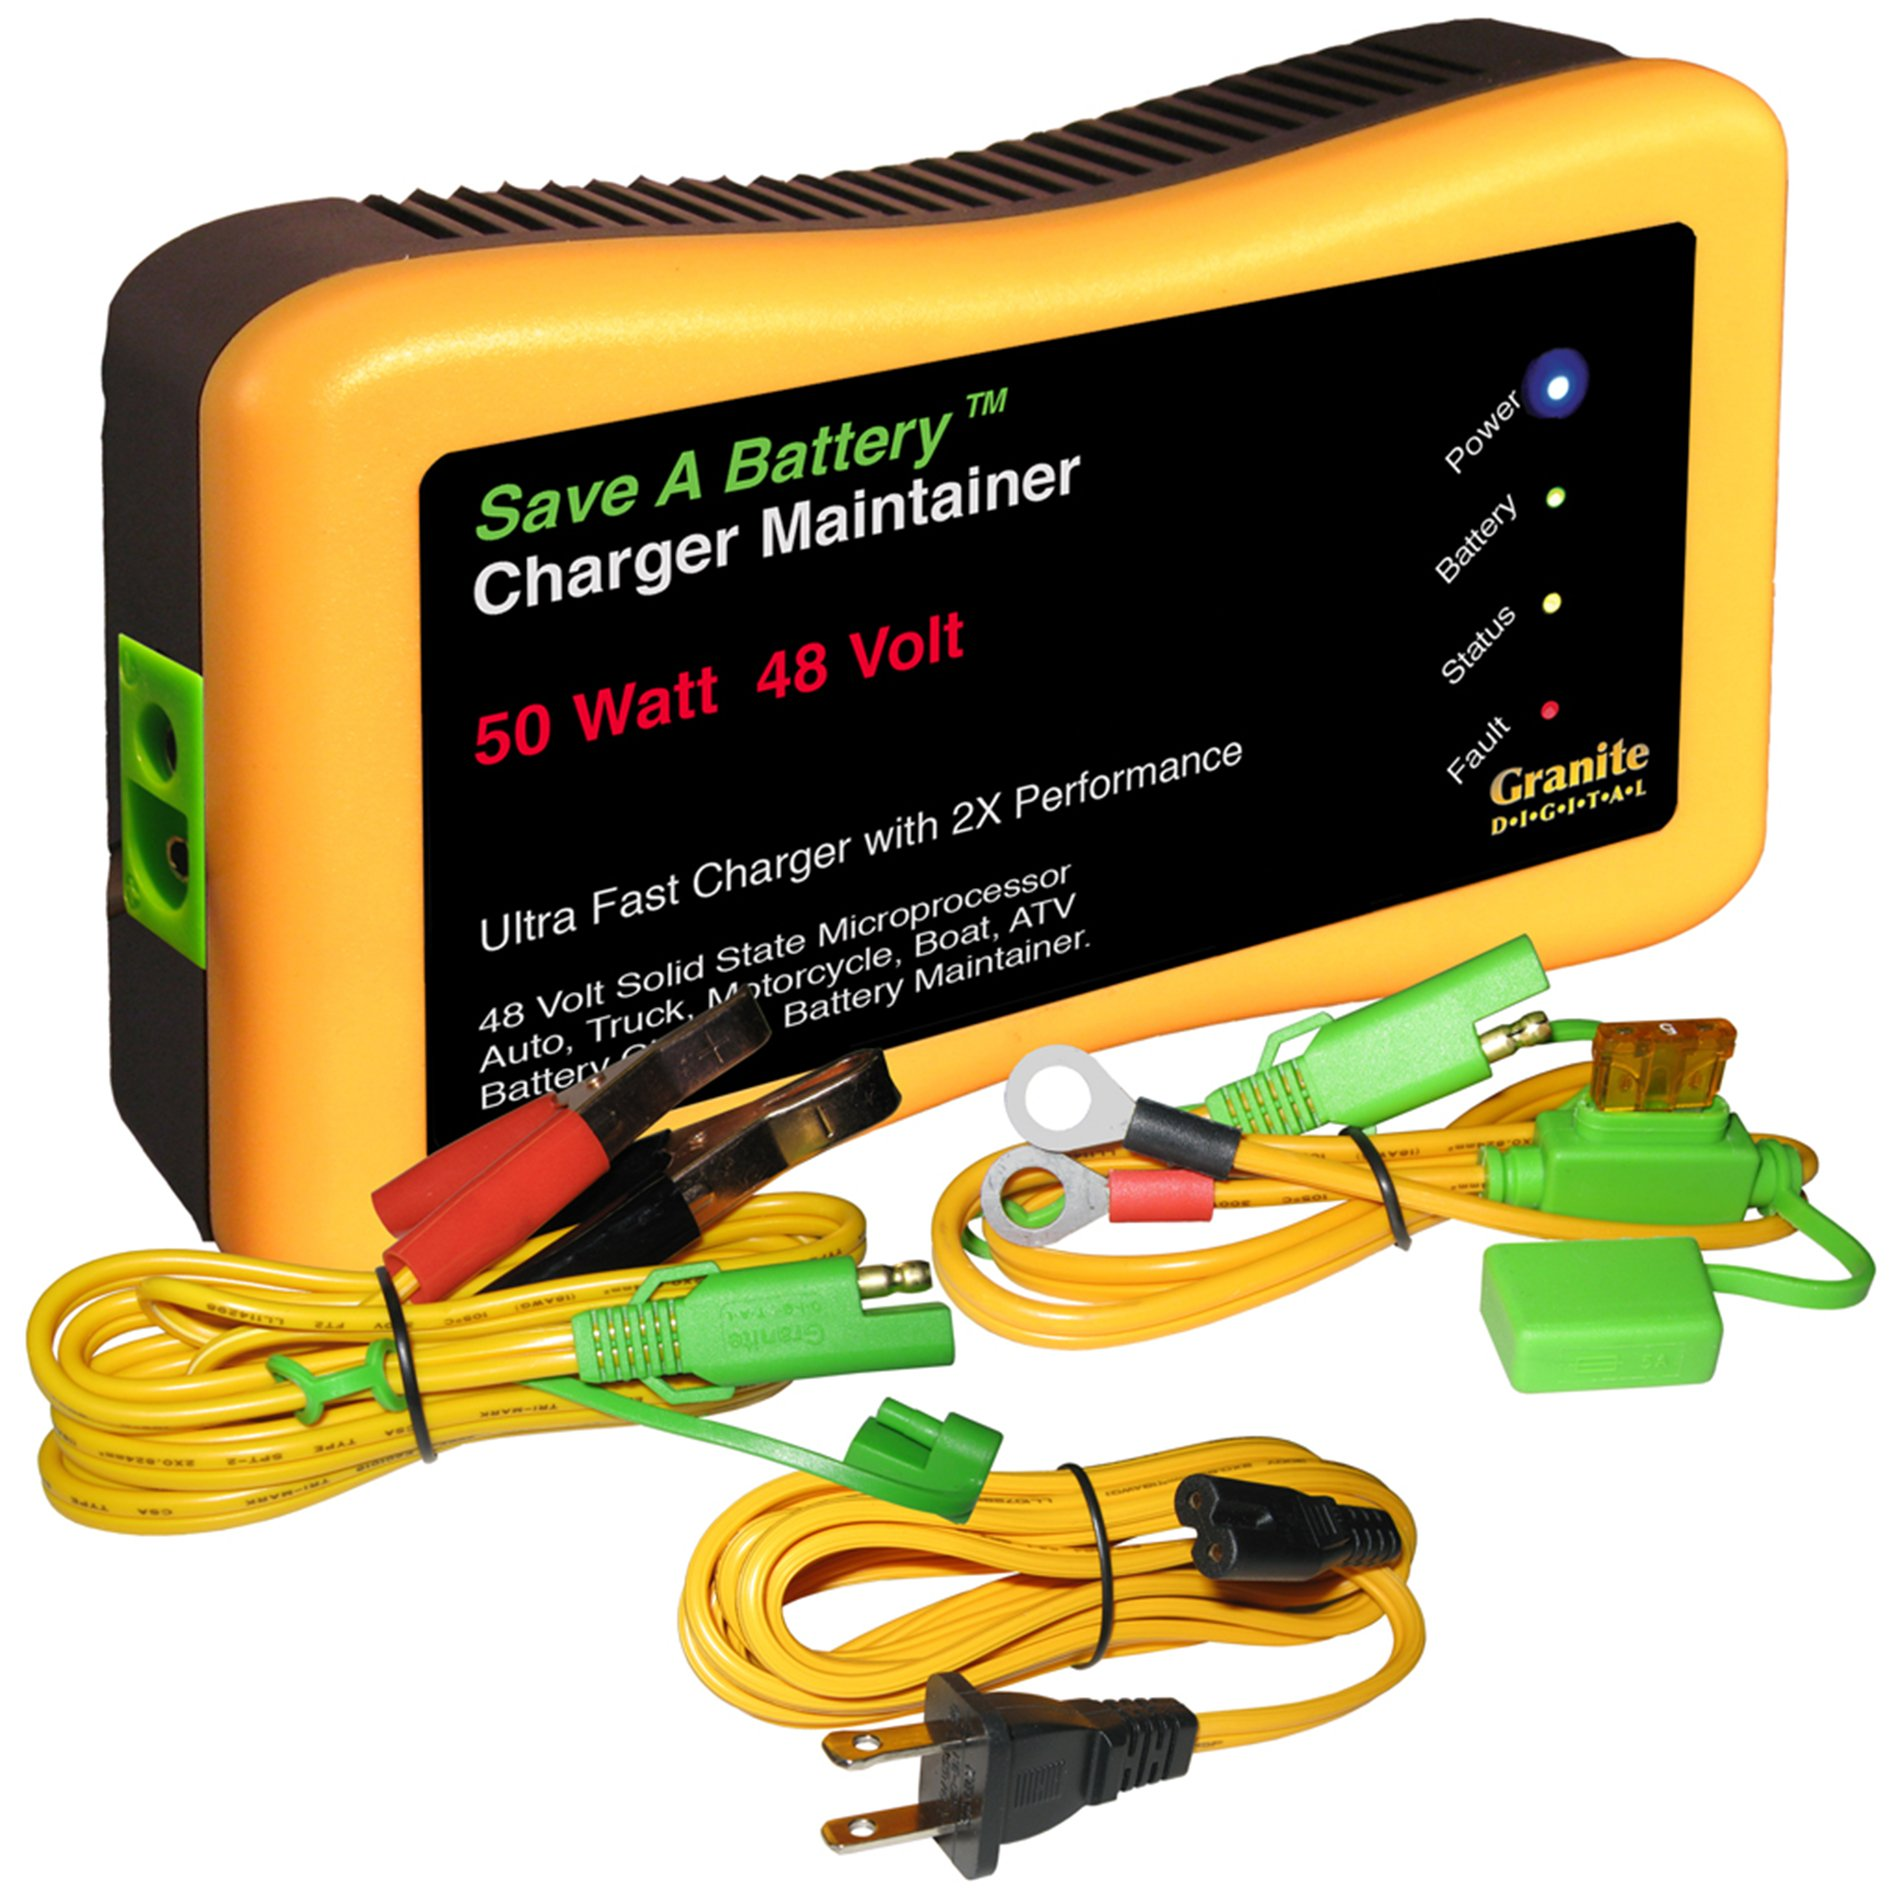 Granite Digital Battery Saver 2365-48 48V 50W Quick Charger and Auto Pulse Maintainer